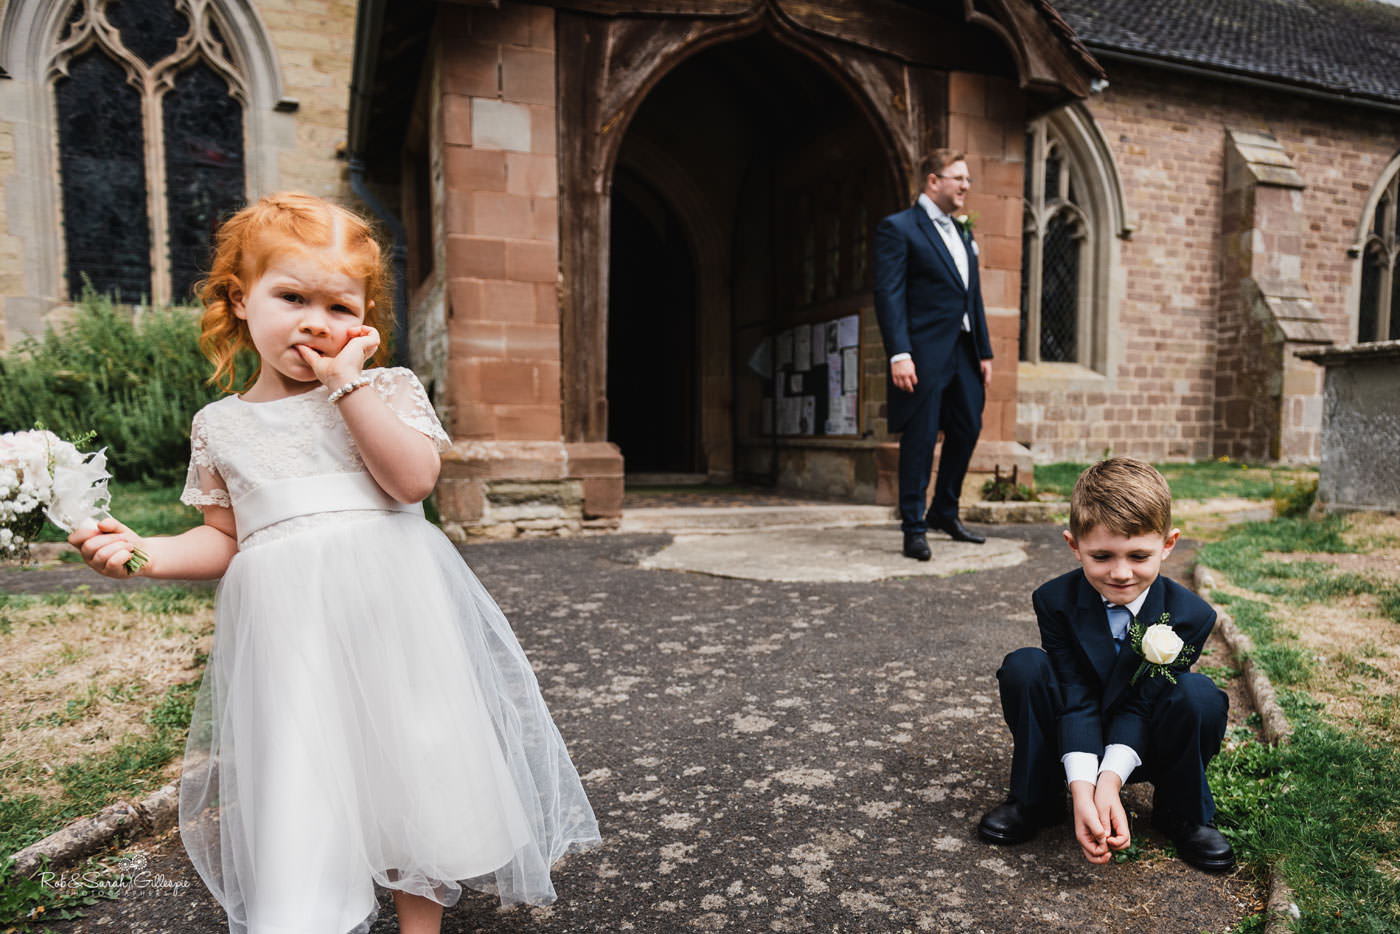 Flower girl and pageboy wait for wedding at St Peter's Church Diddlebury